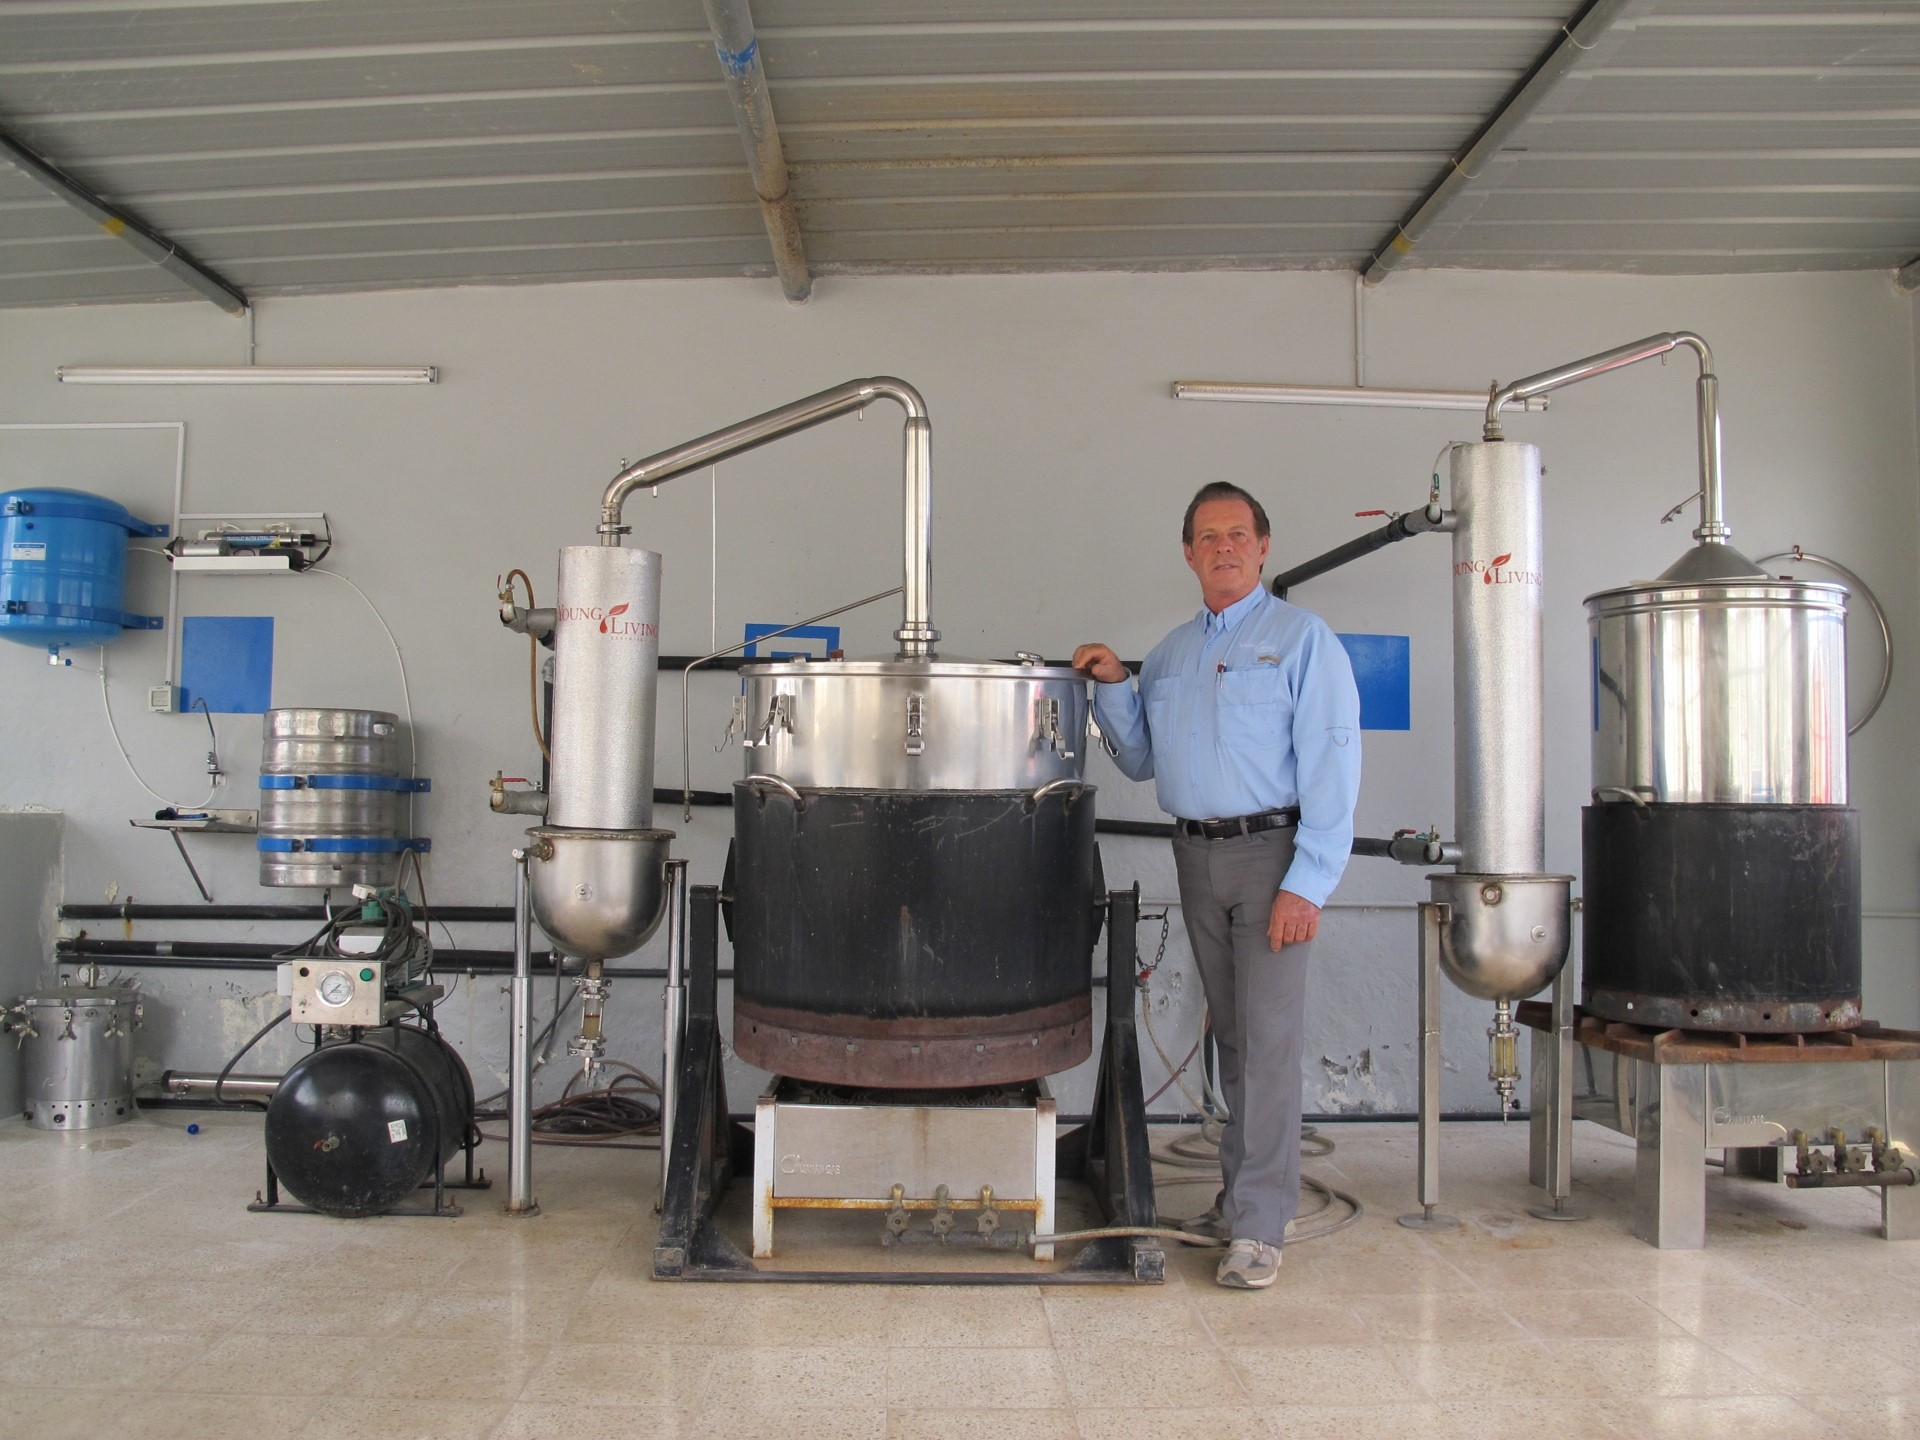 Gary in the Salalah, Oman, distillery where Sacred Frankincense and Myrrh are distilled. There is now an addition of one more 500-liter stainless steel extraction chamber , making three such chambers in all.